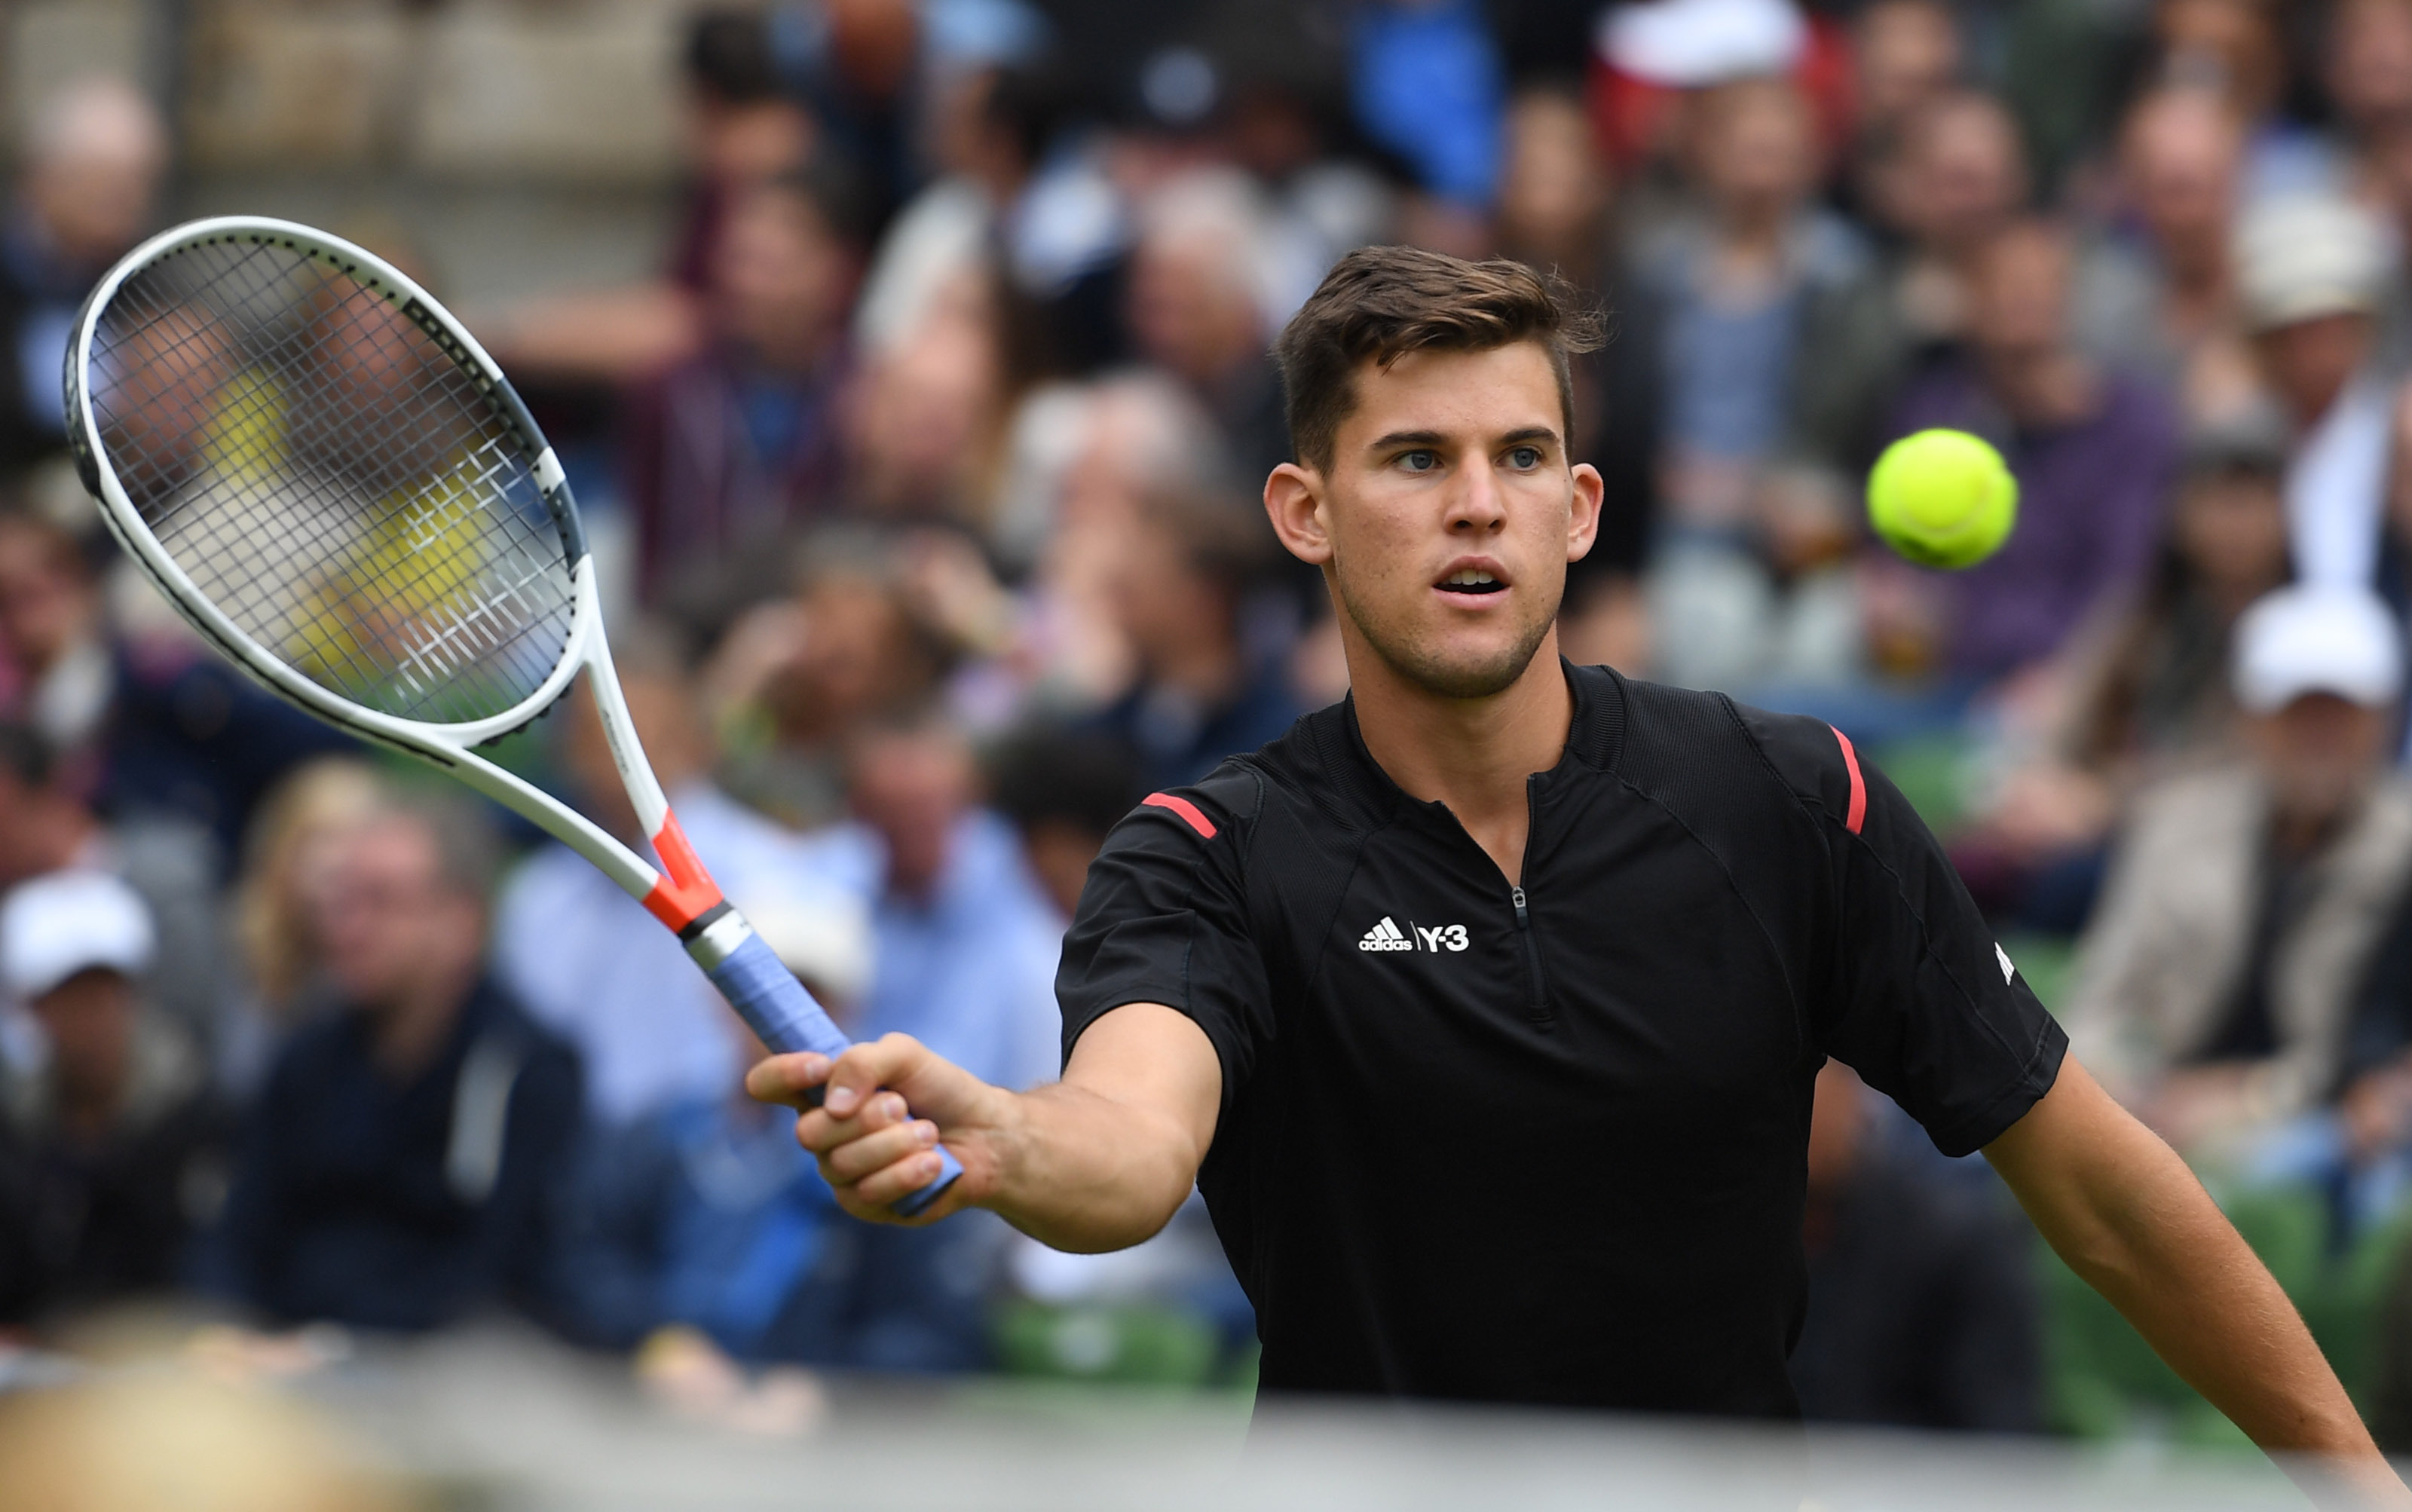 Dominic Thiem from Austria returns a ball to Roger Federer from Switzerland during the semifinals at the MercedesCup  ATP  tennis tournament in Stuttgart, Germany, Saturday June 11,  2016.  (Marijan Murat/dpa via AP)